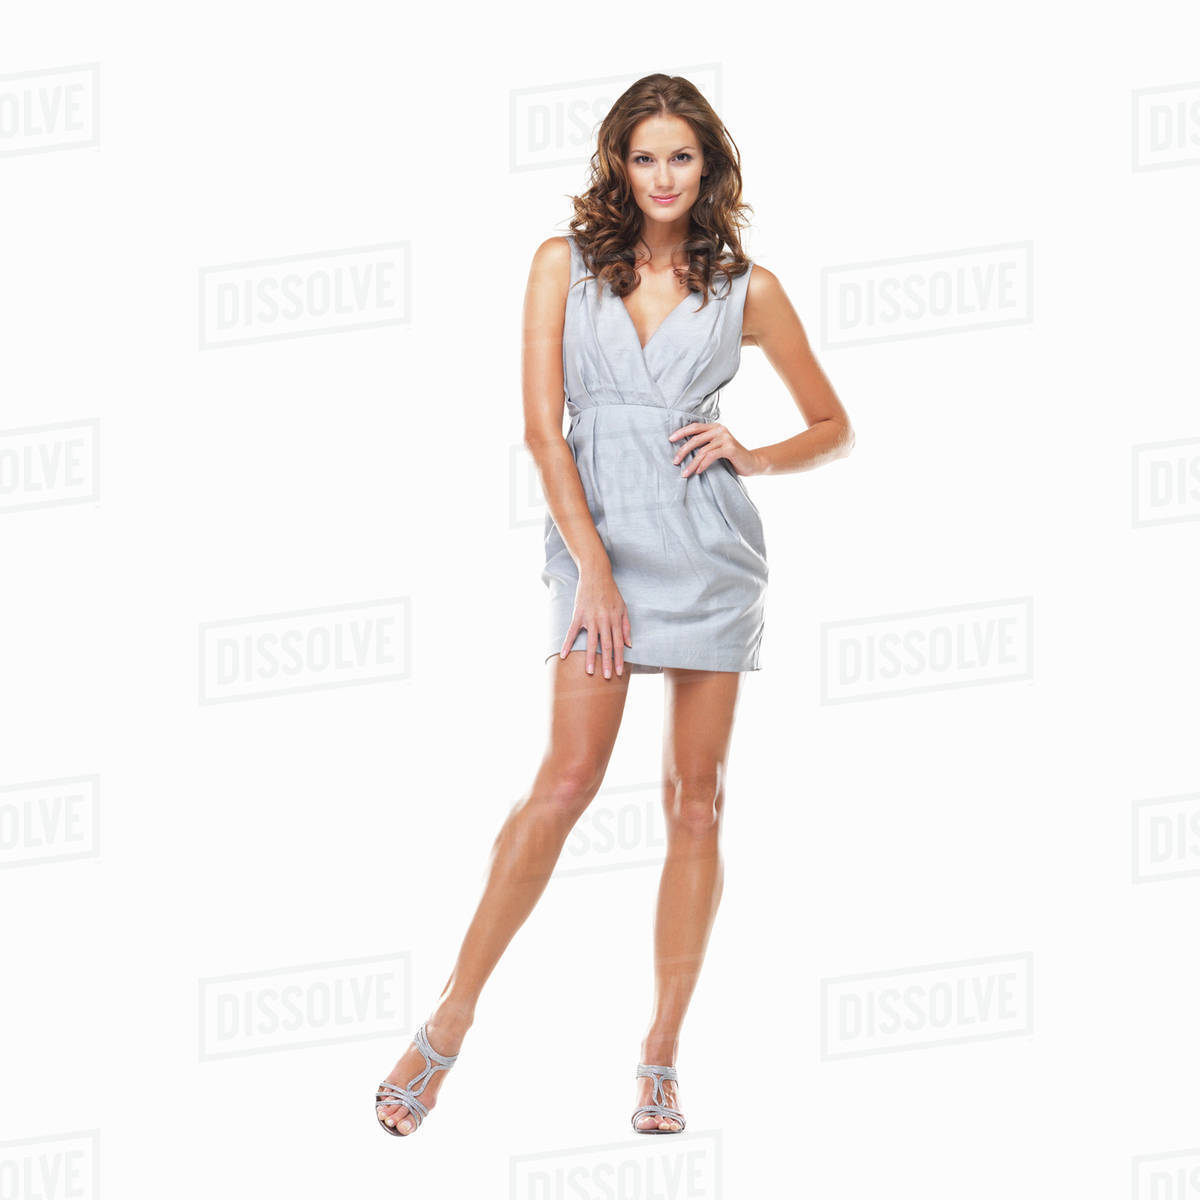 c67379a7a9 Studio shot of young beautiful woman standing on white background ...